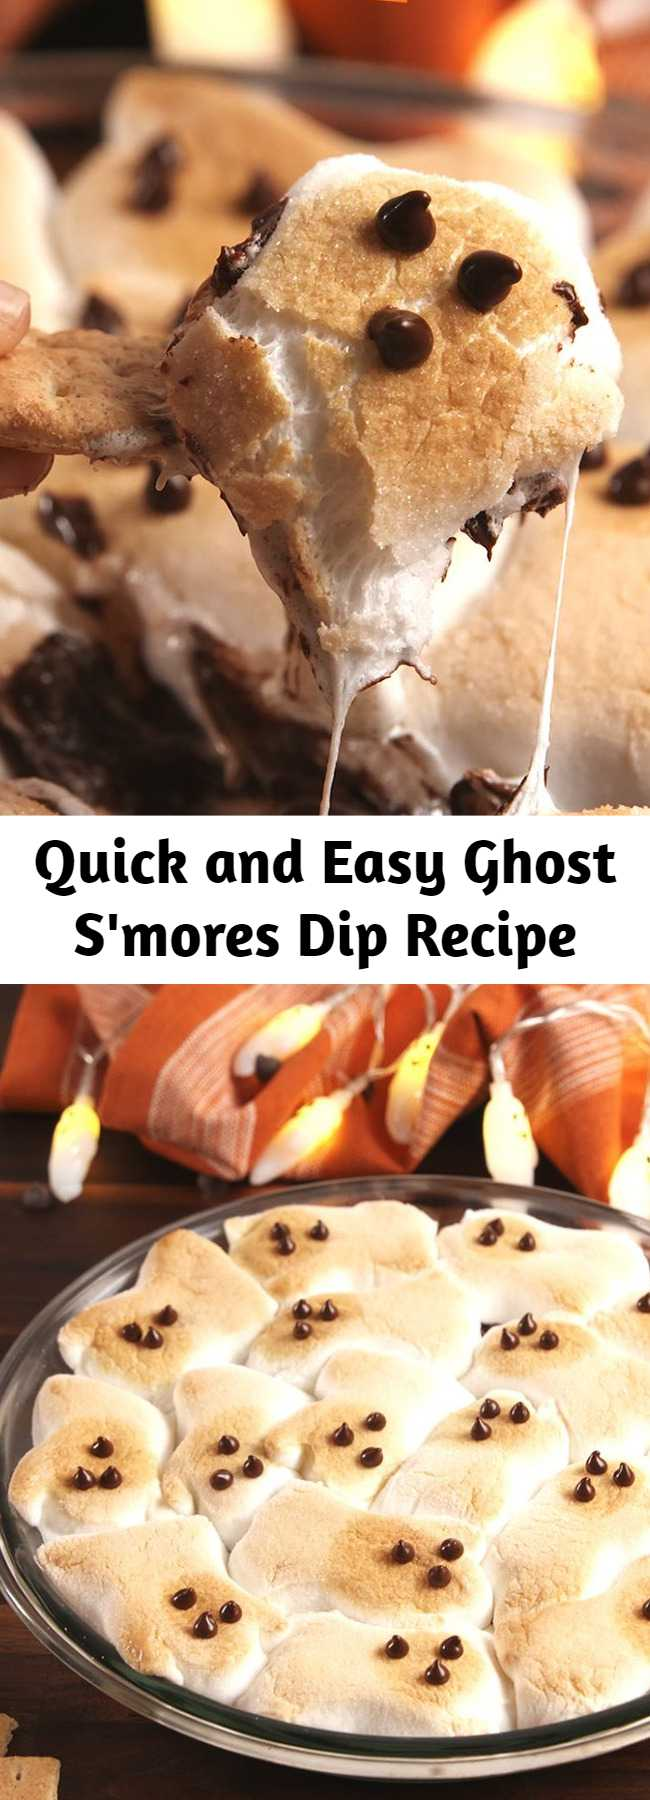 Quick and Easy Ghost S'mores Dip Recipe - A scary delicious Halloween dip that's easy to make whenever you need a quick treat.